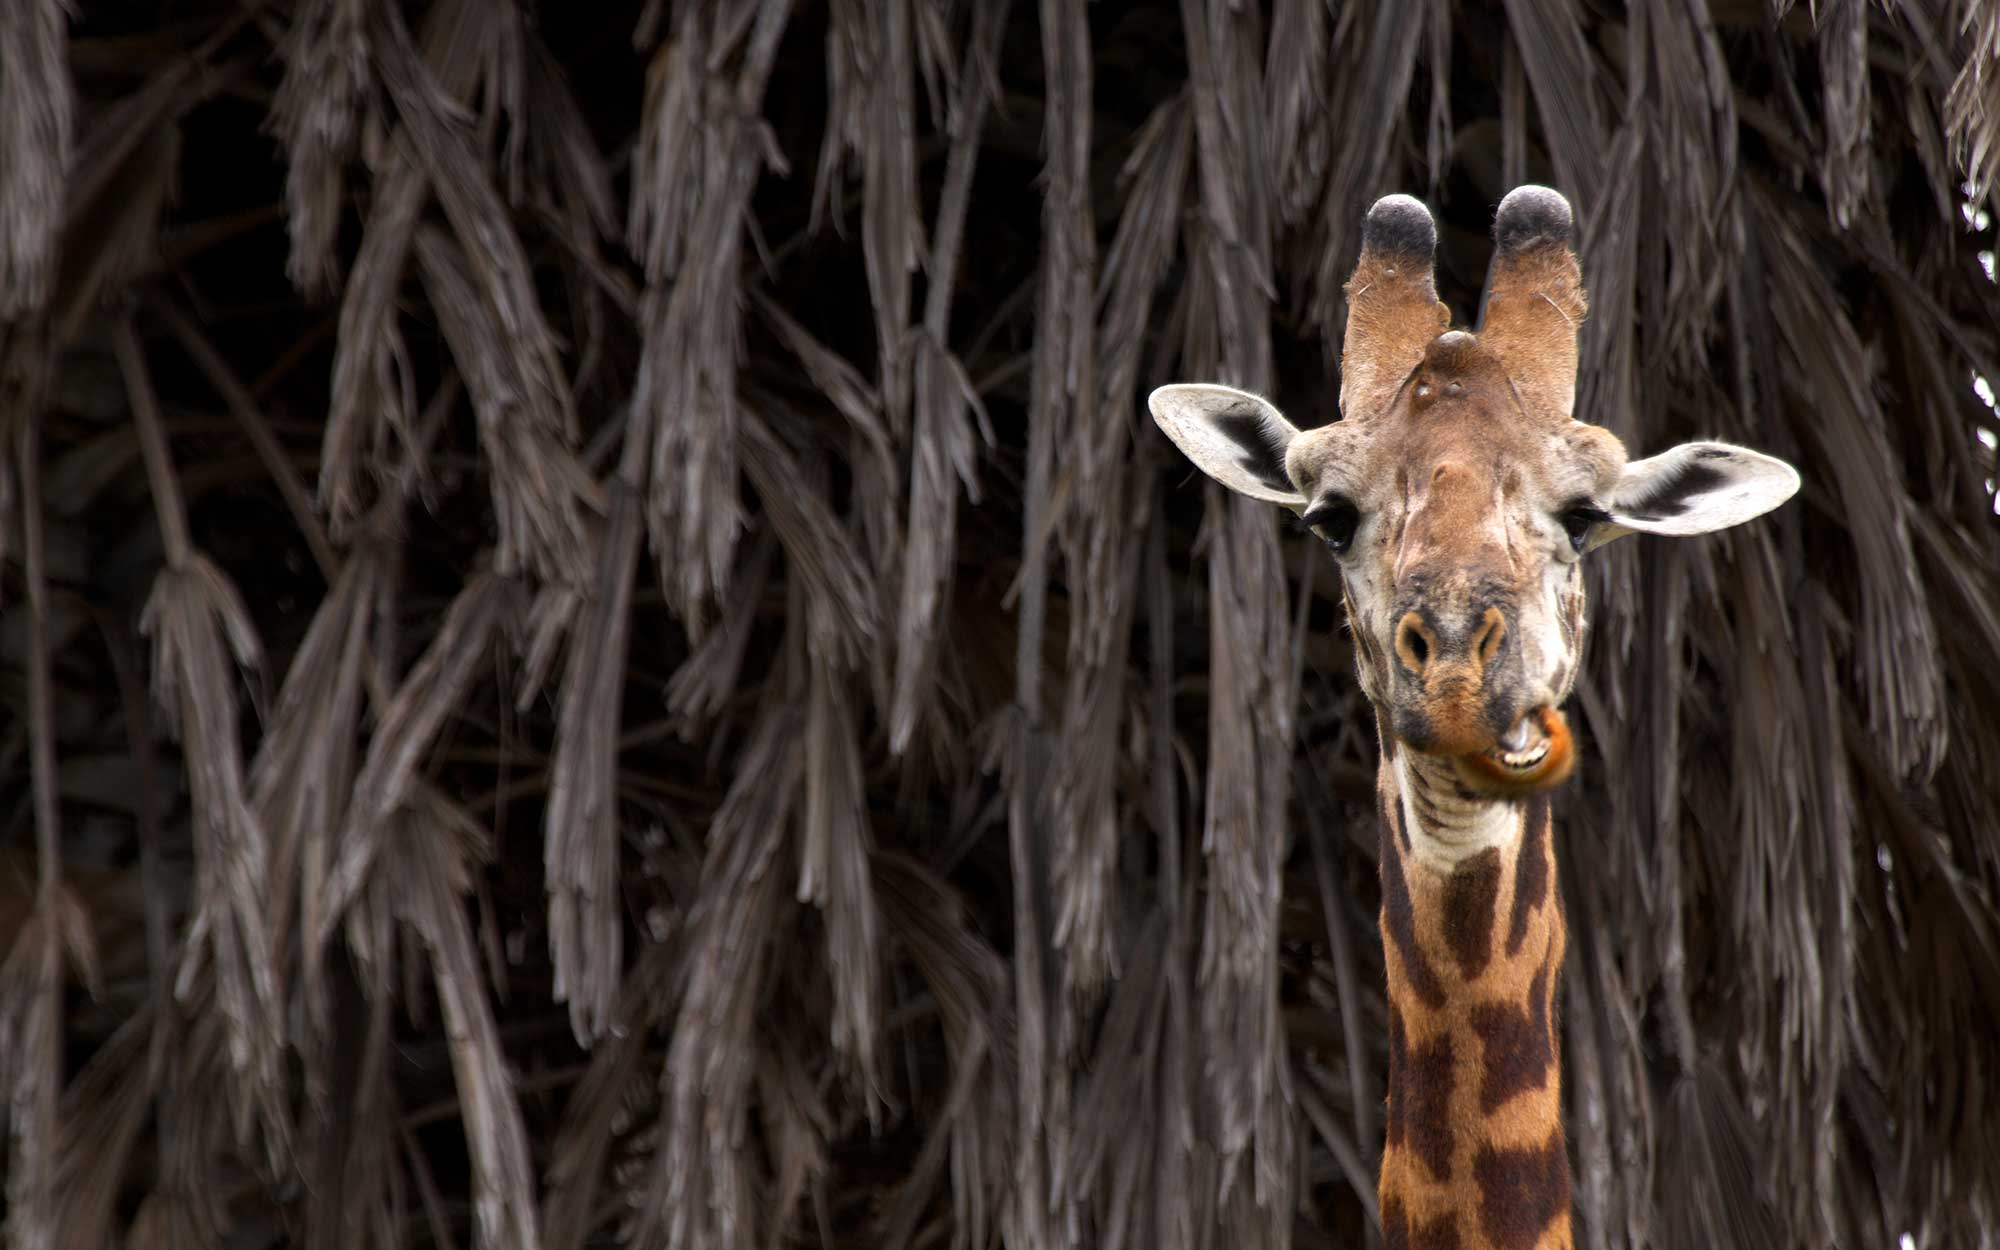 Giraffe feedings in Kenya